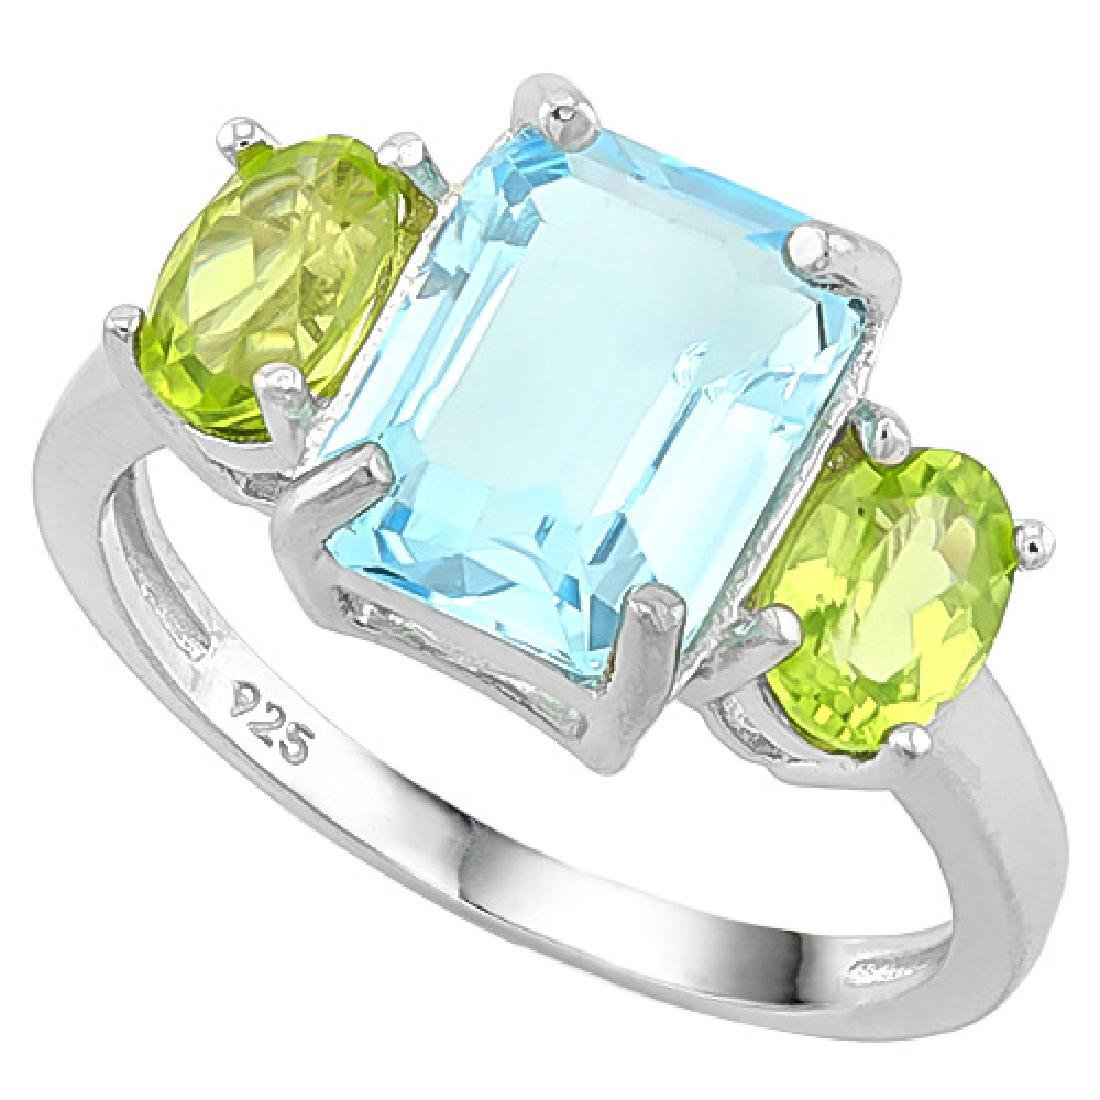 4CT STUNNING EMERALD CUT BLUE TOPAZ/PERIDOT RING